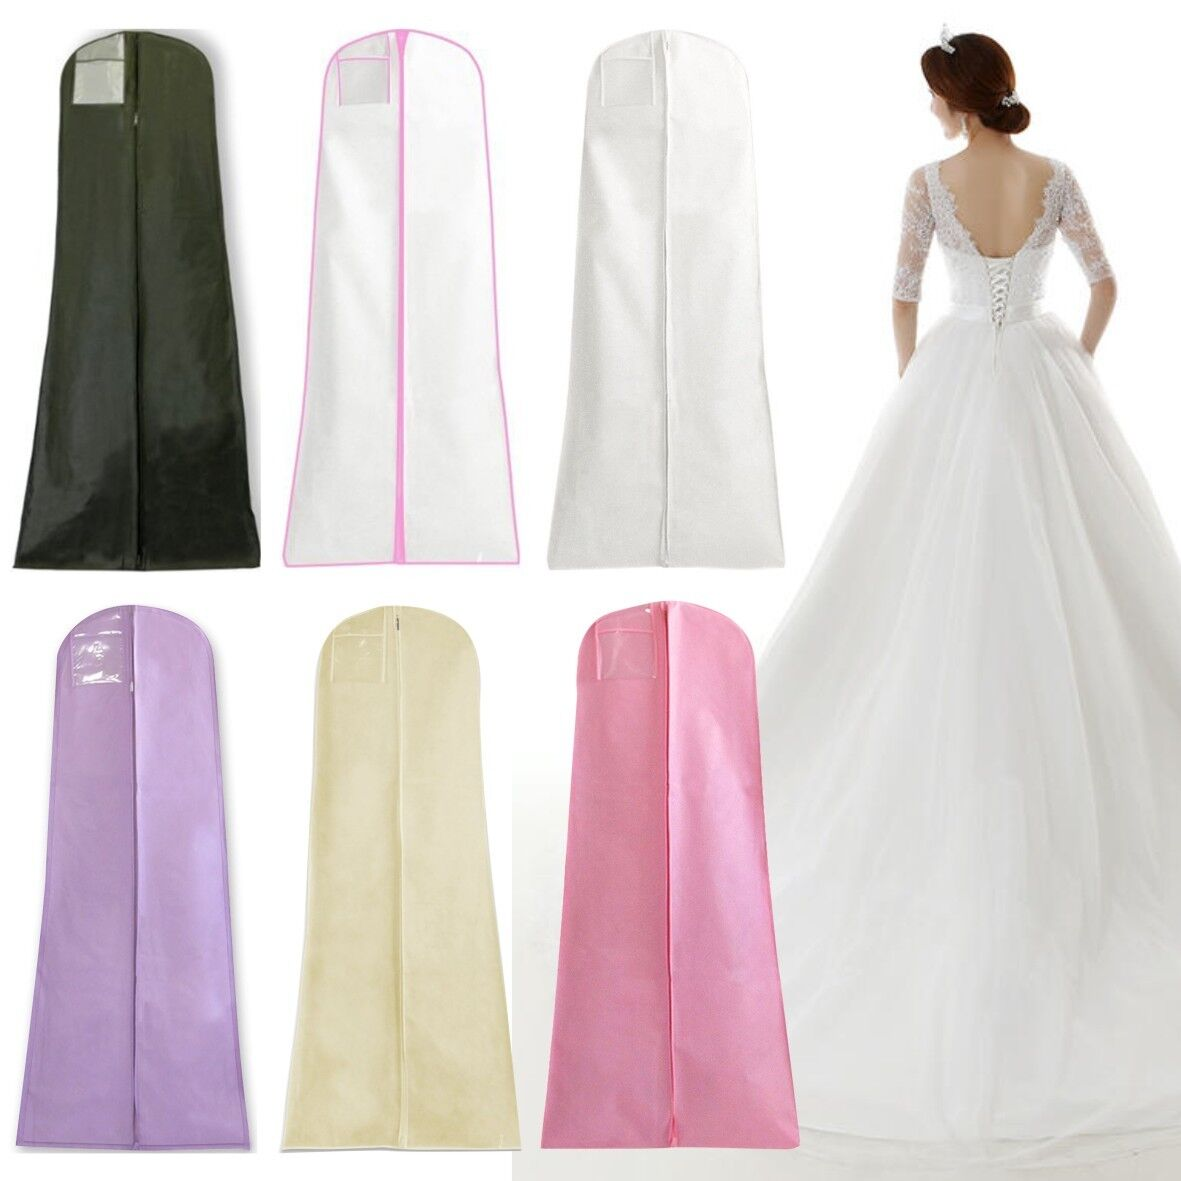 Wedding Gown Preservation Bag: Wedding Dress Storage Bags Long Bridal Gown Garment Cover